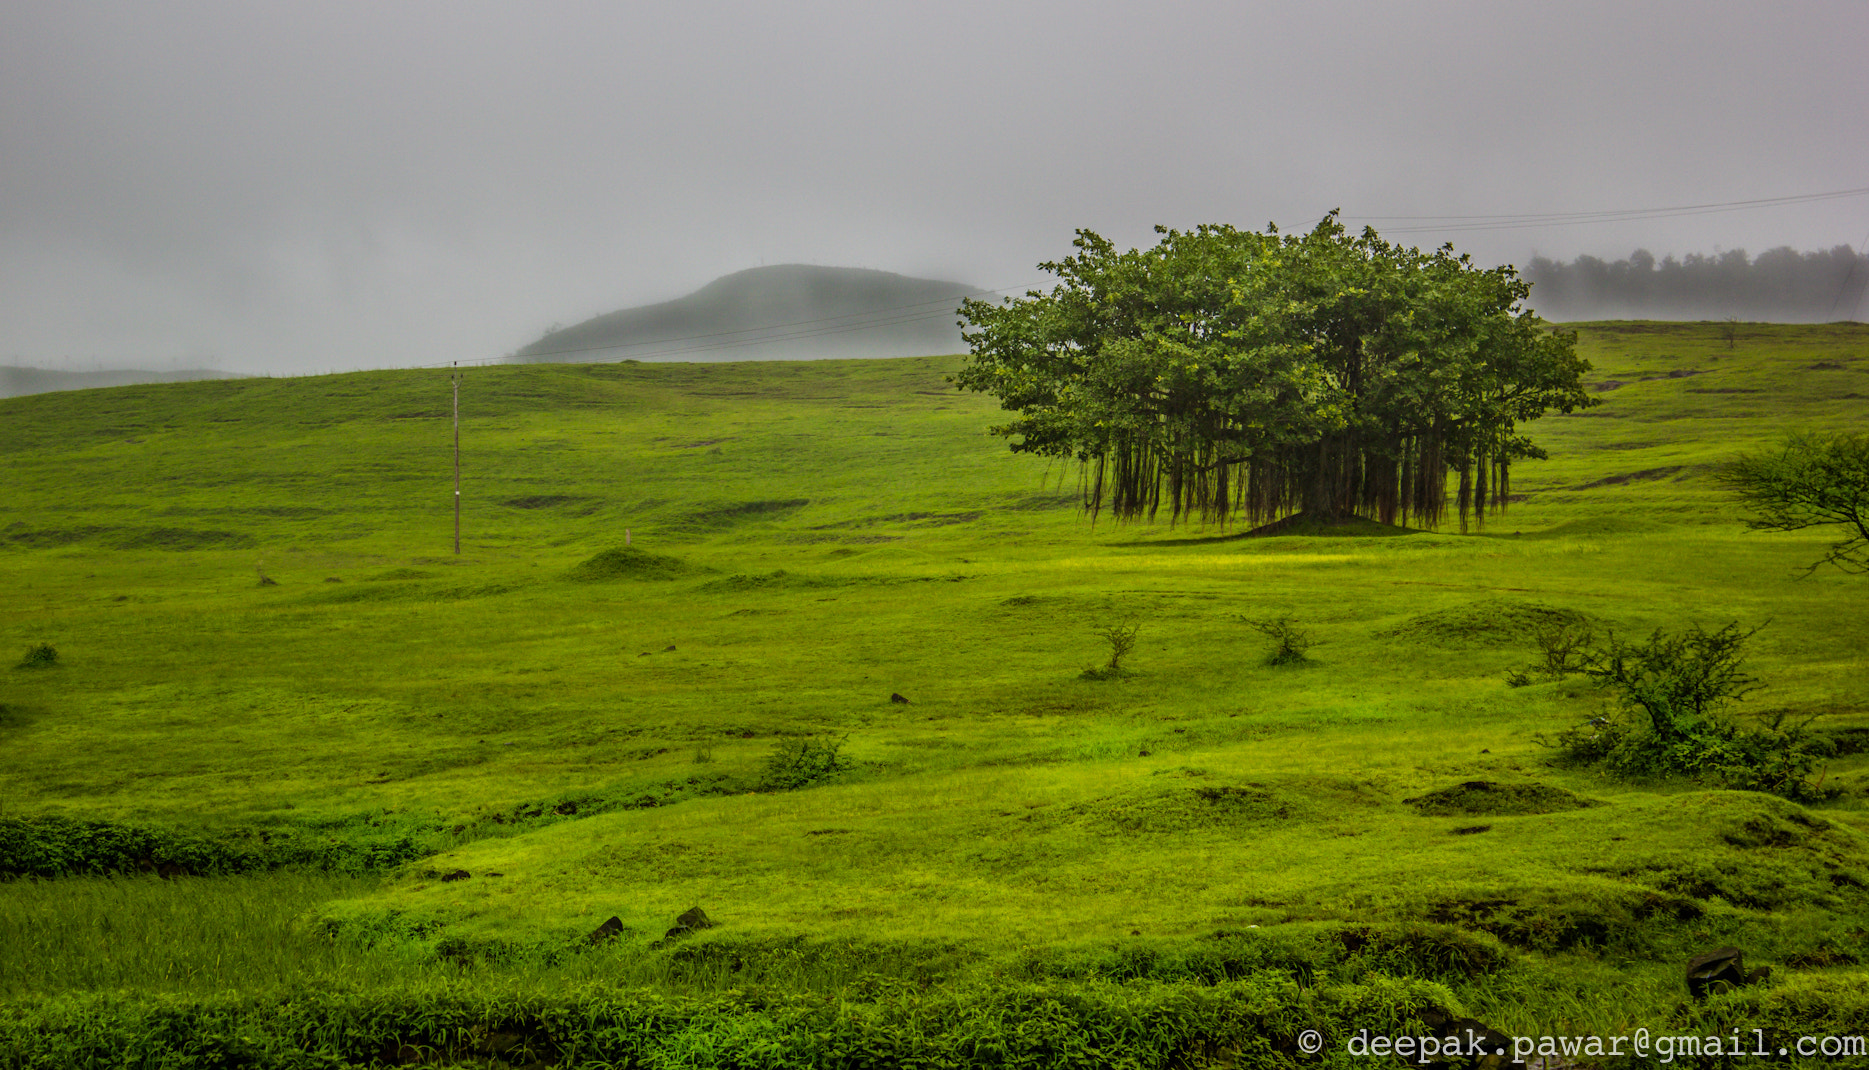 Photograph Isolated, yet so integral to the mother nature by Deepak Pawar on 500px